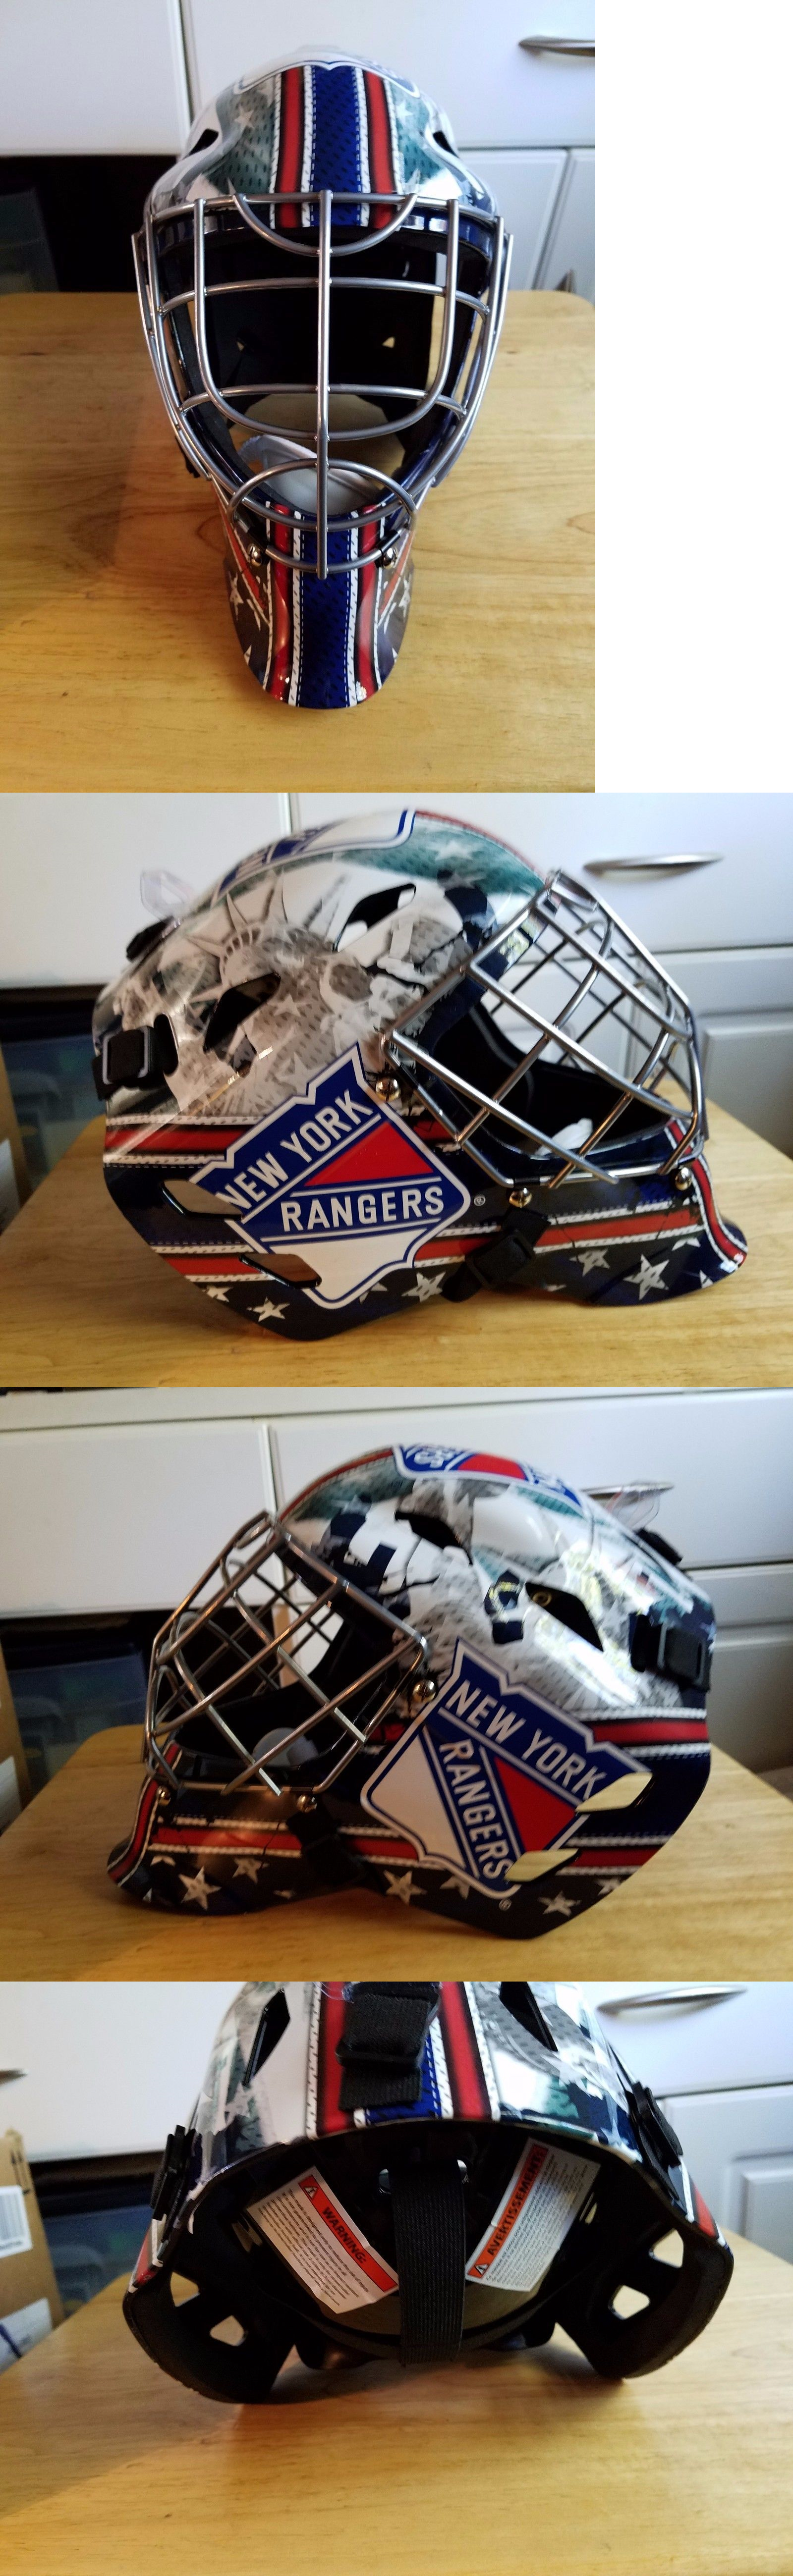 Face Masks 79762  Franklin Sports Gfm 1500 Nhl New York Rangers Goalie Fac  New -  BUY IT NOW ONLY   60.44 on eBay!  951f7869c